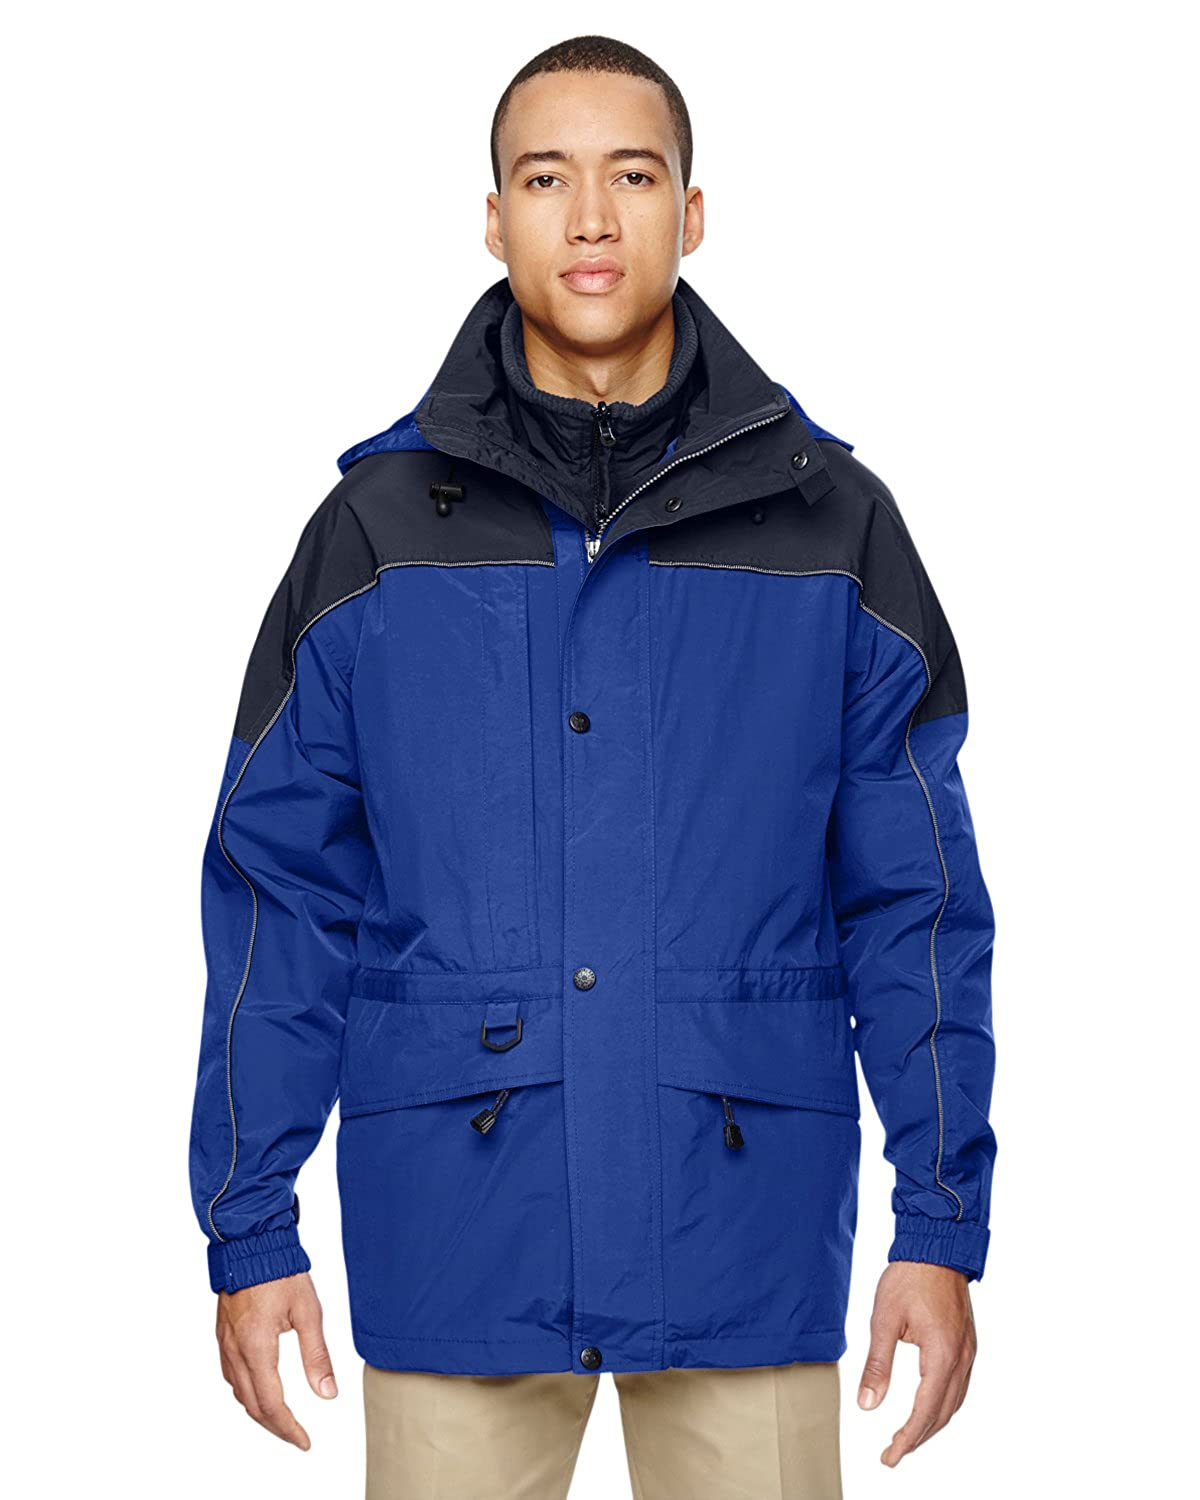 North End Mens 3-In-1 Two-Tone Parka Water Resistant Jacket Ash City - North End M10672